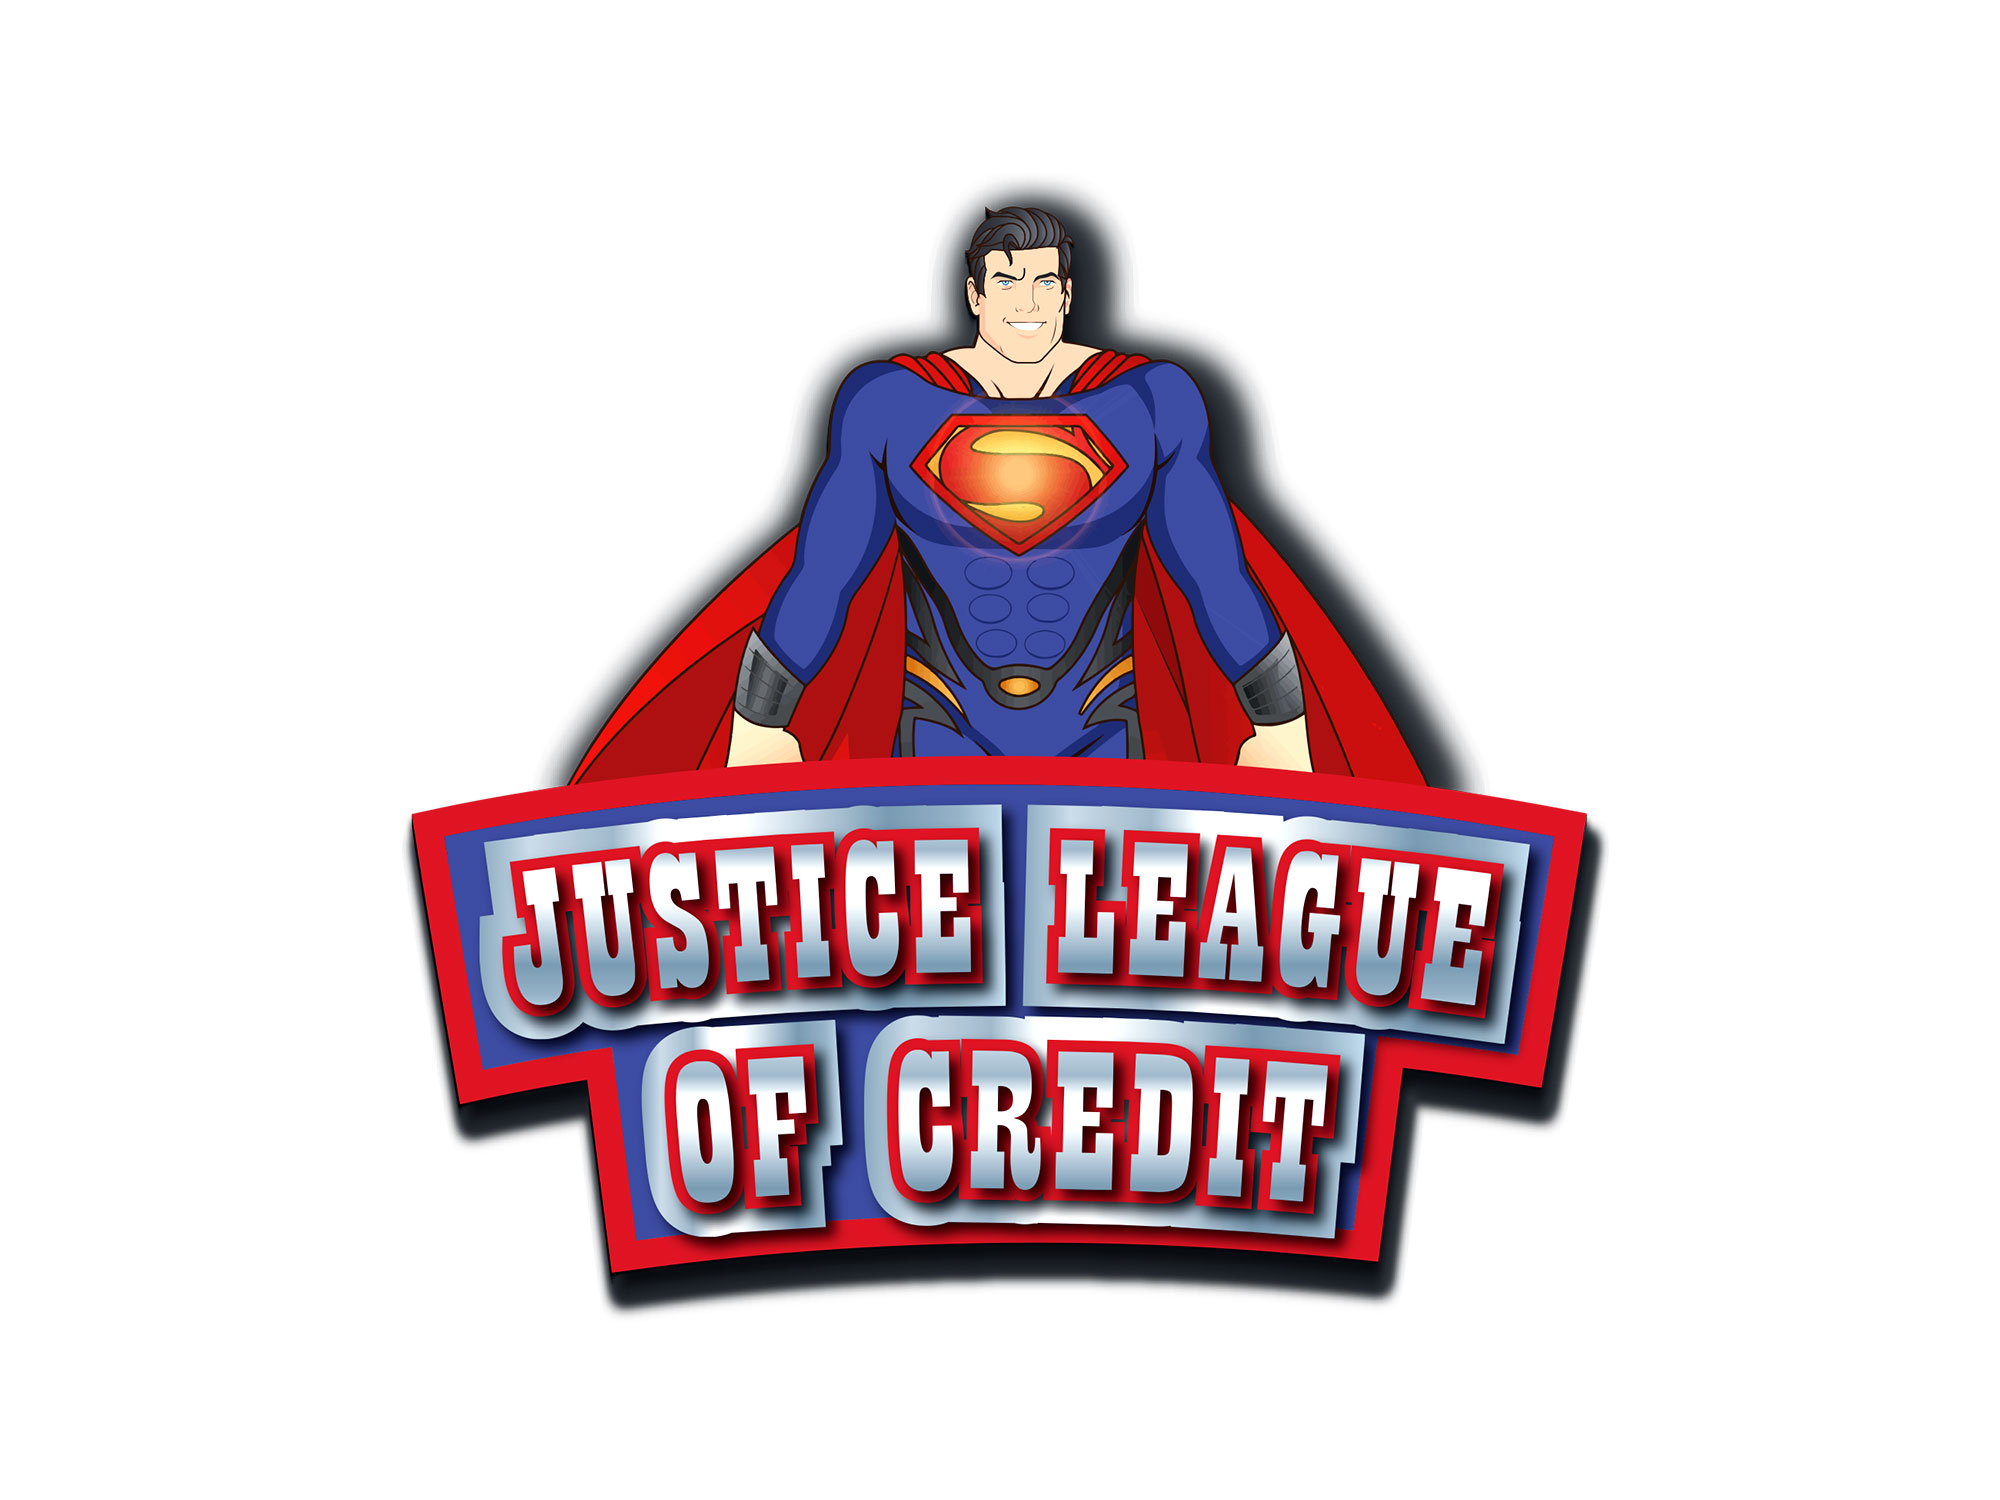 Justice League of Credit